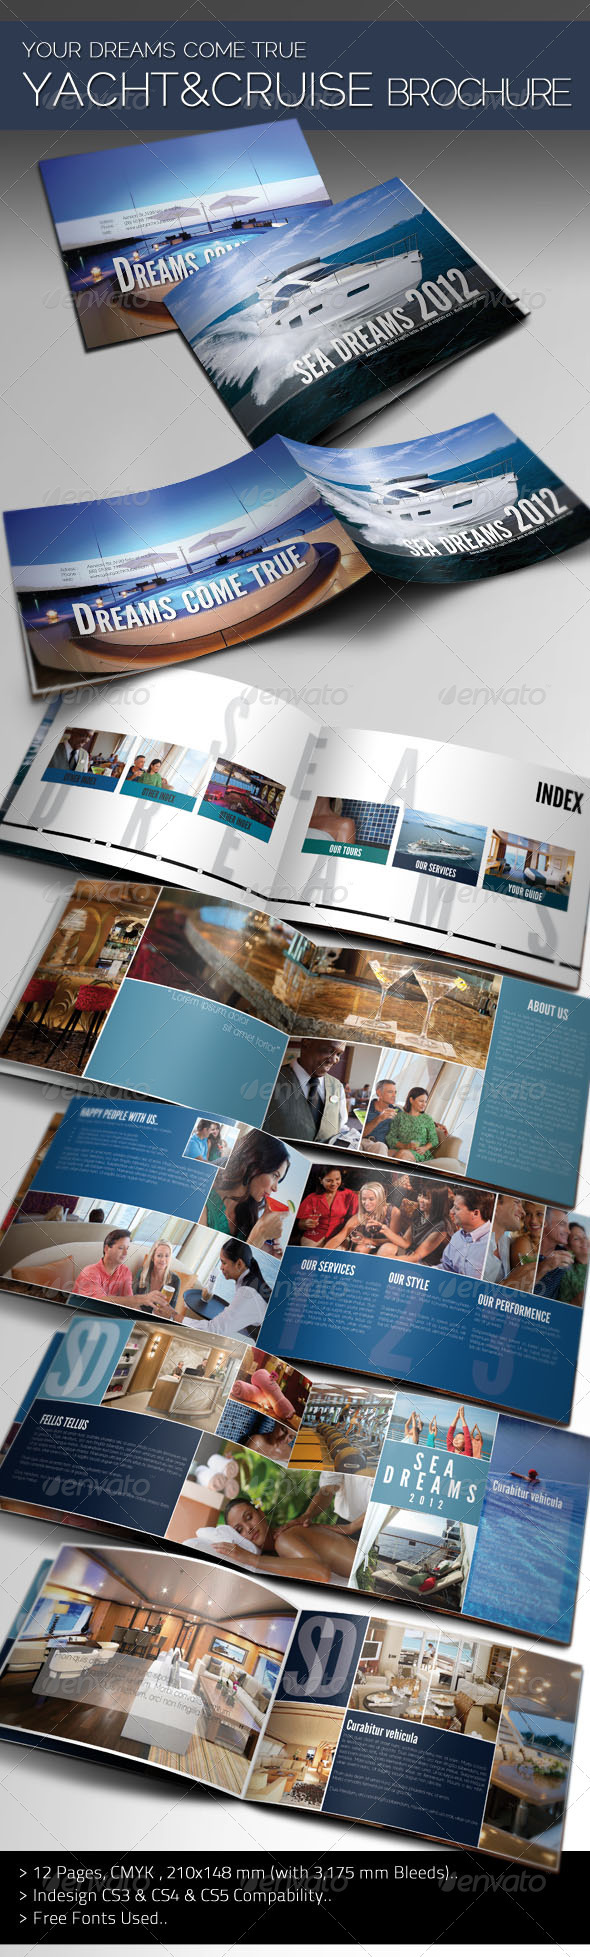 Sea Dreams - Yacht & Cruise Brochure - Corporate Brochures